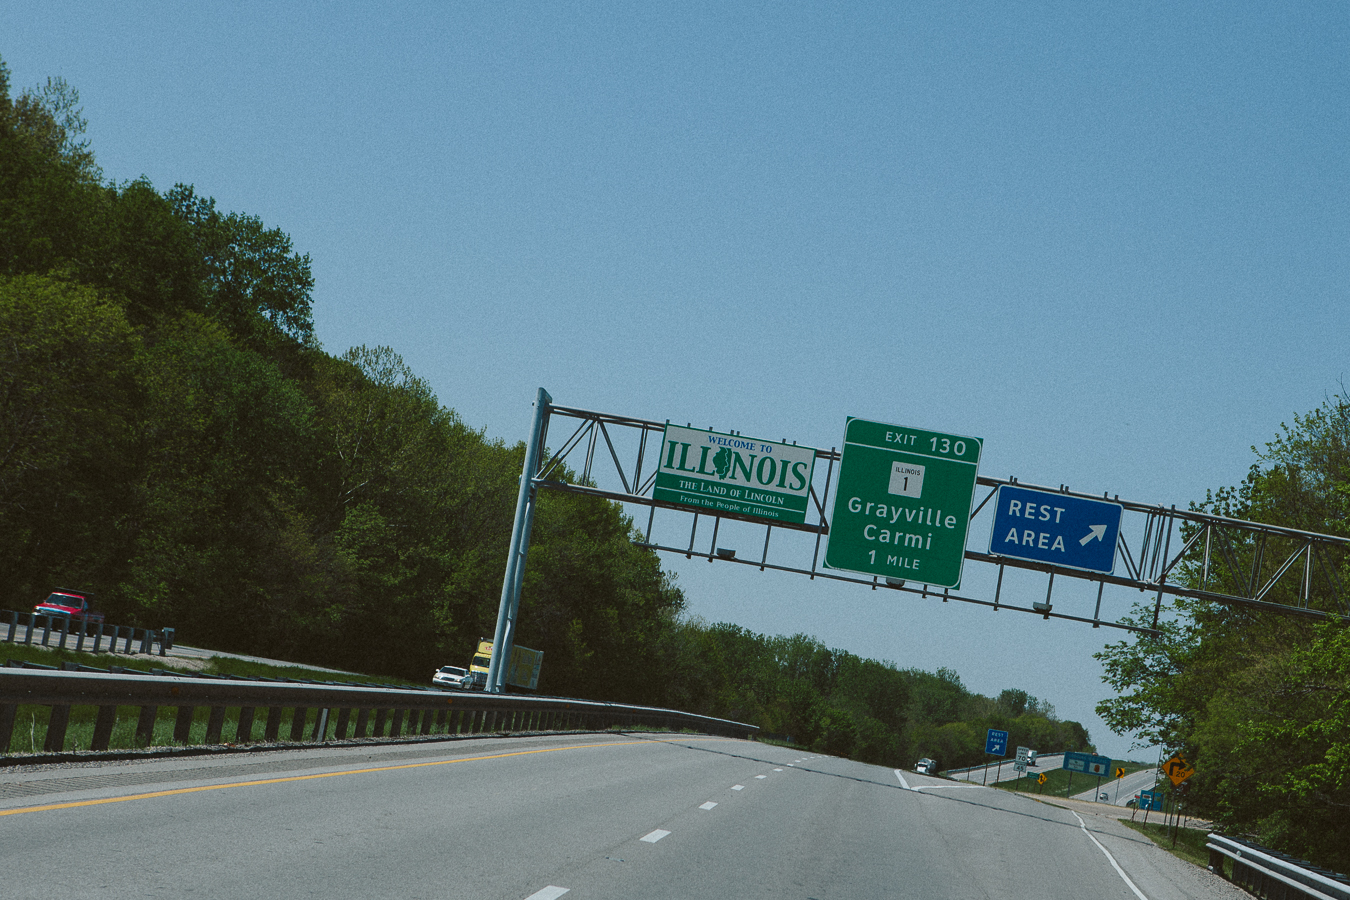 I passed through  Illinois again , but since Ialready visited the state I kept on truckin'.